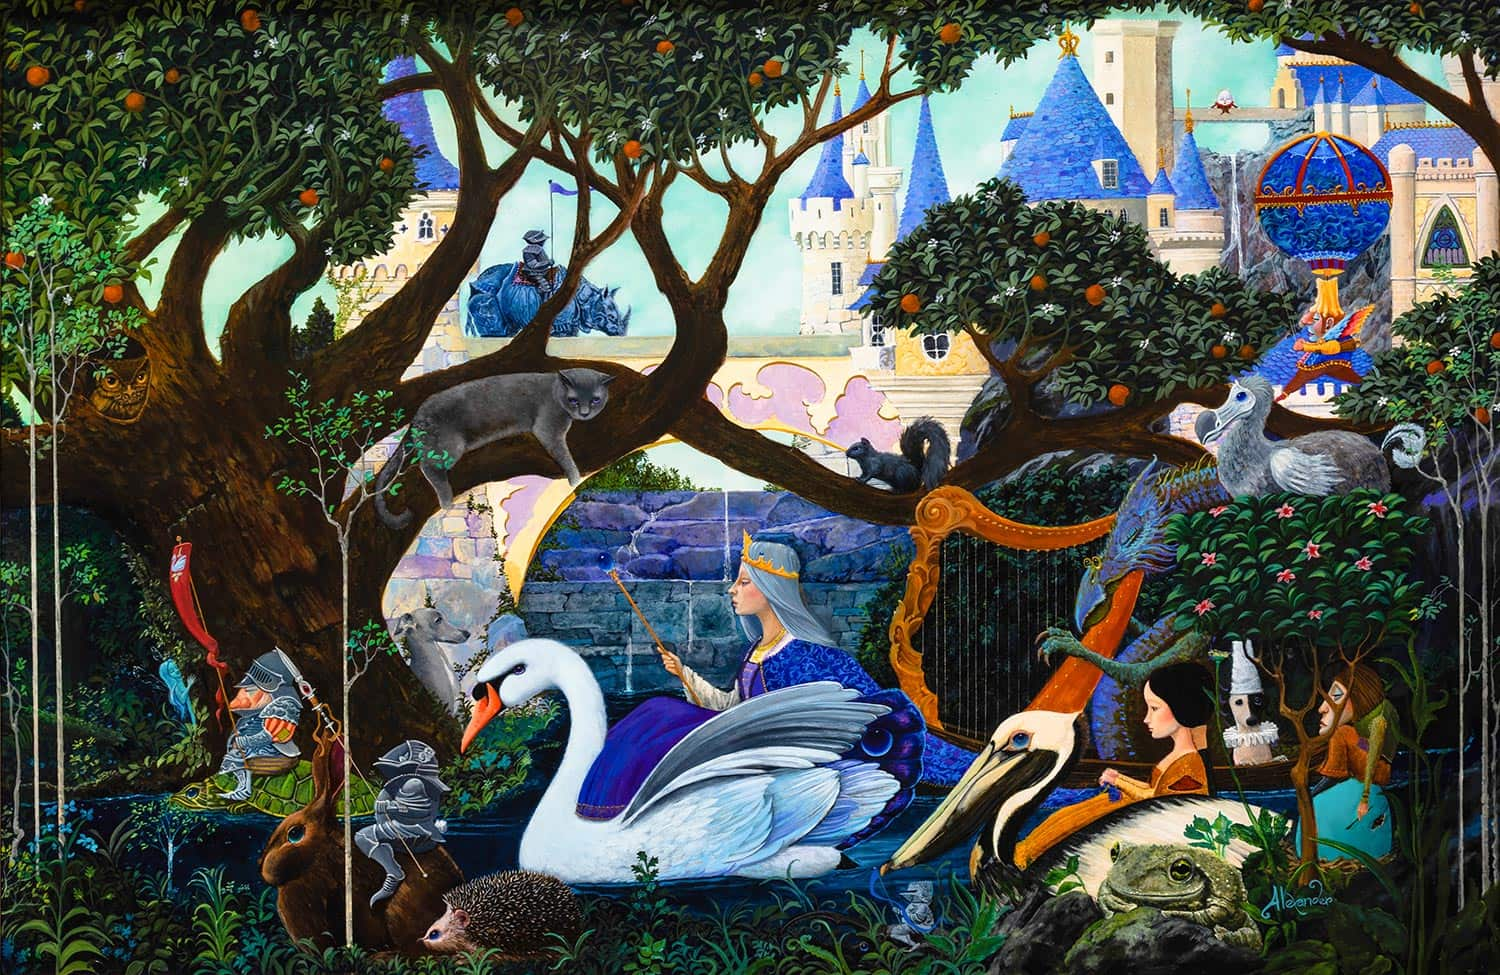 R.L. Alexander, 'Procession of the Swan Queen,' Oil on panel, 2021 Mayfaire by-the-Lake Featured Image